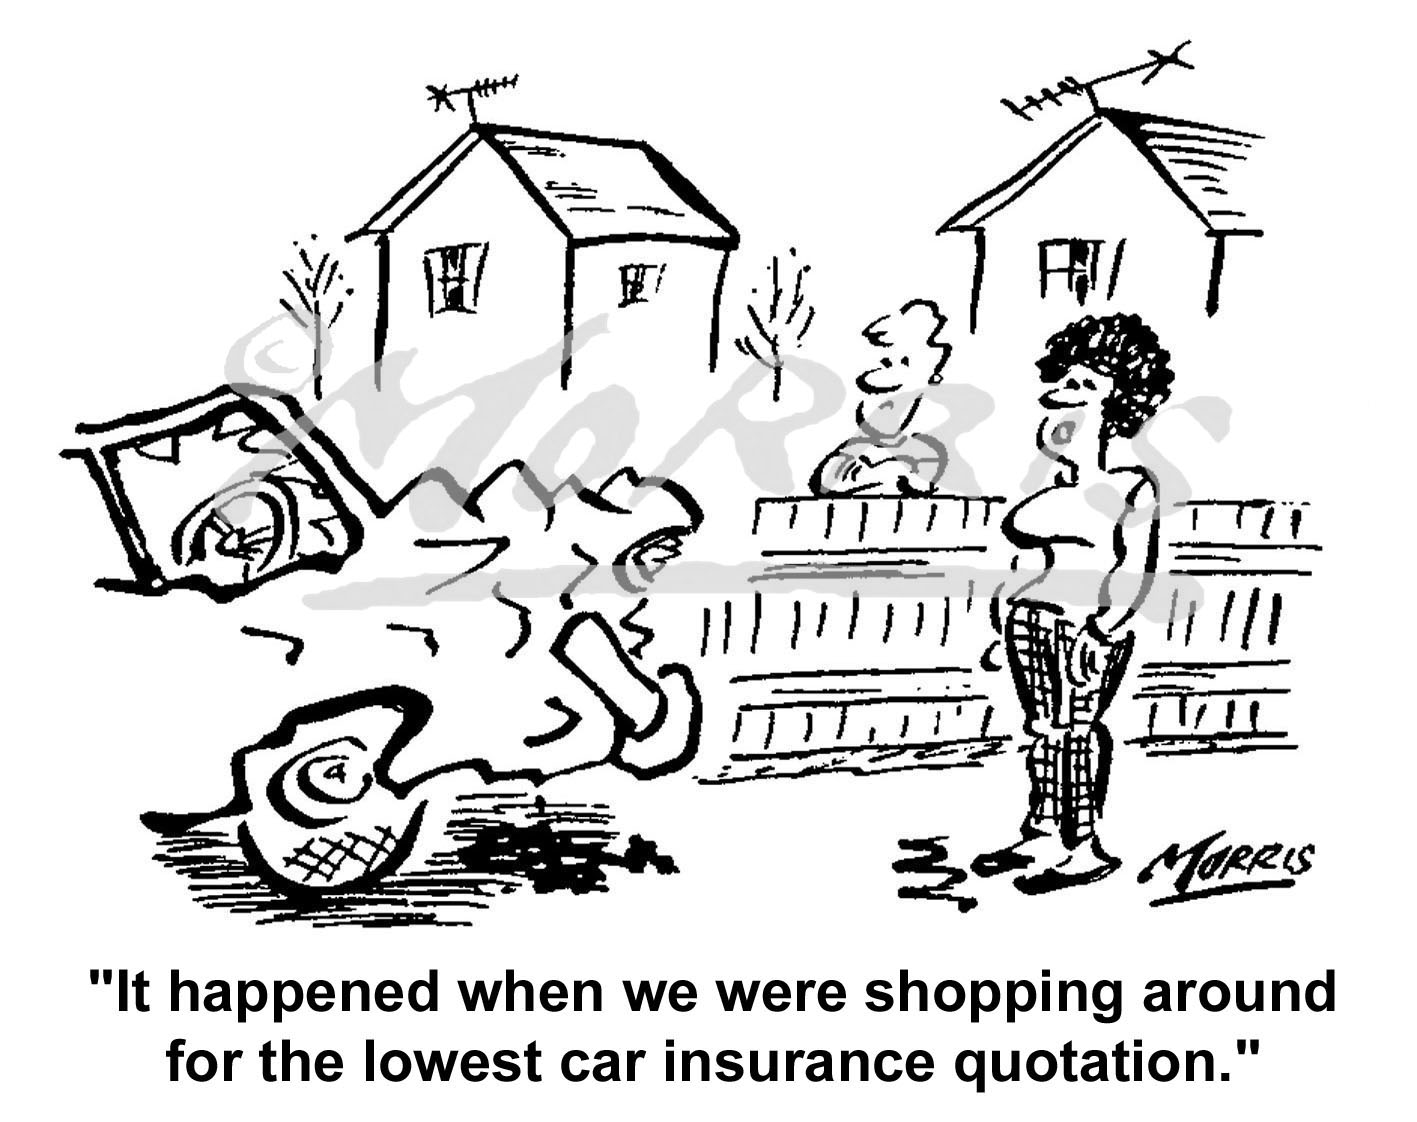 Motor insurance cartoon Ref: 0323bw